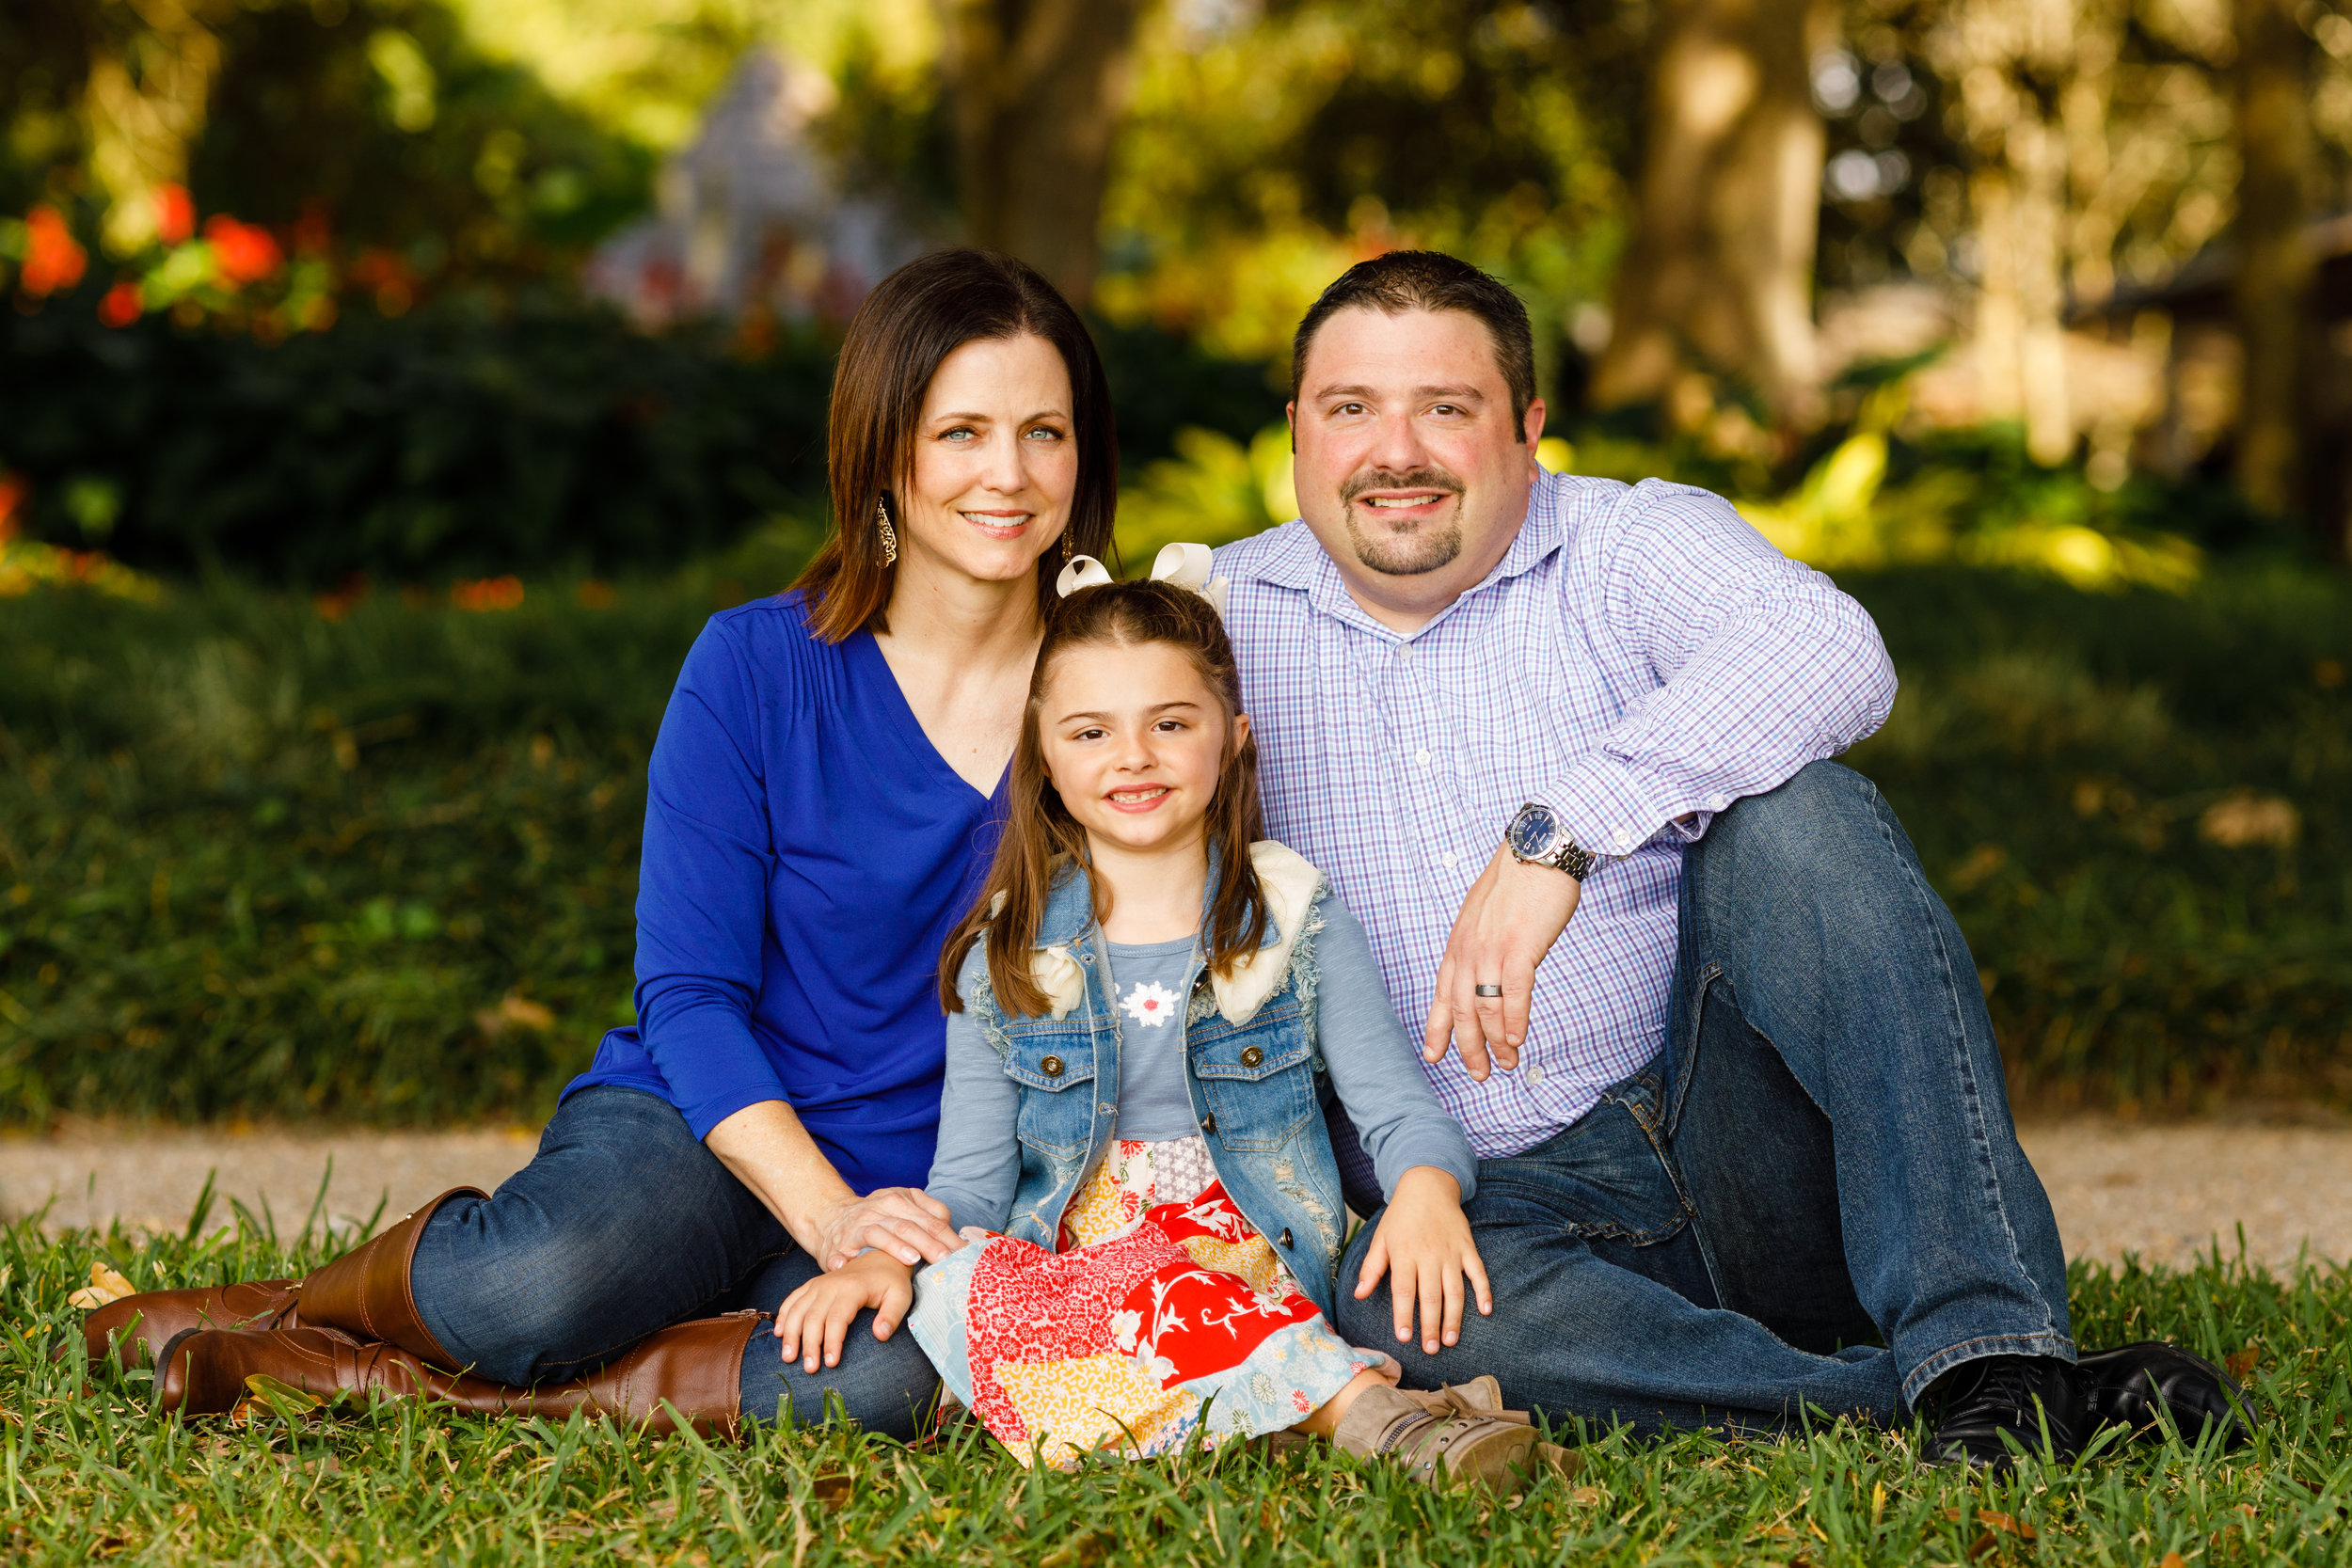 Youngsville-lafayette-portrait-family-wedding-photographer-9477.jpg